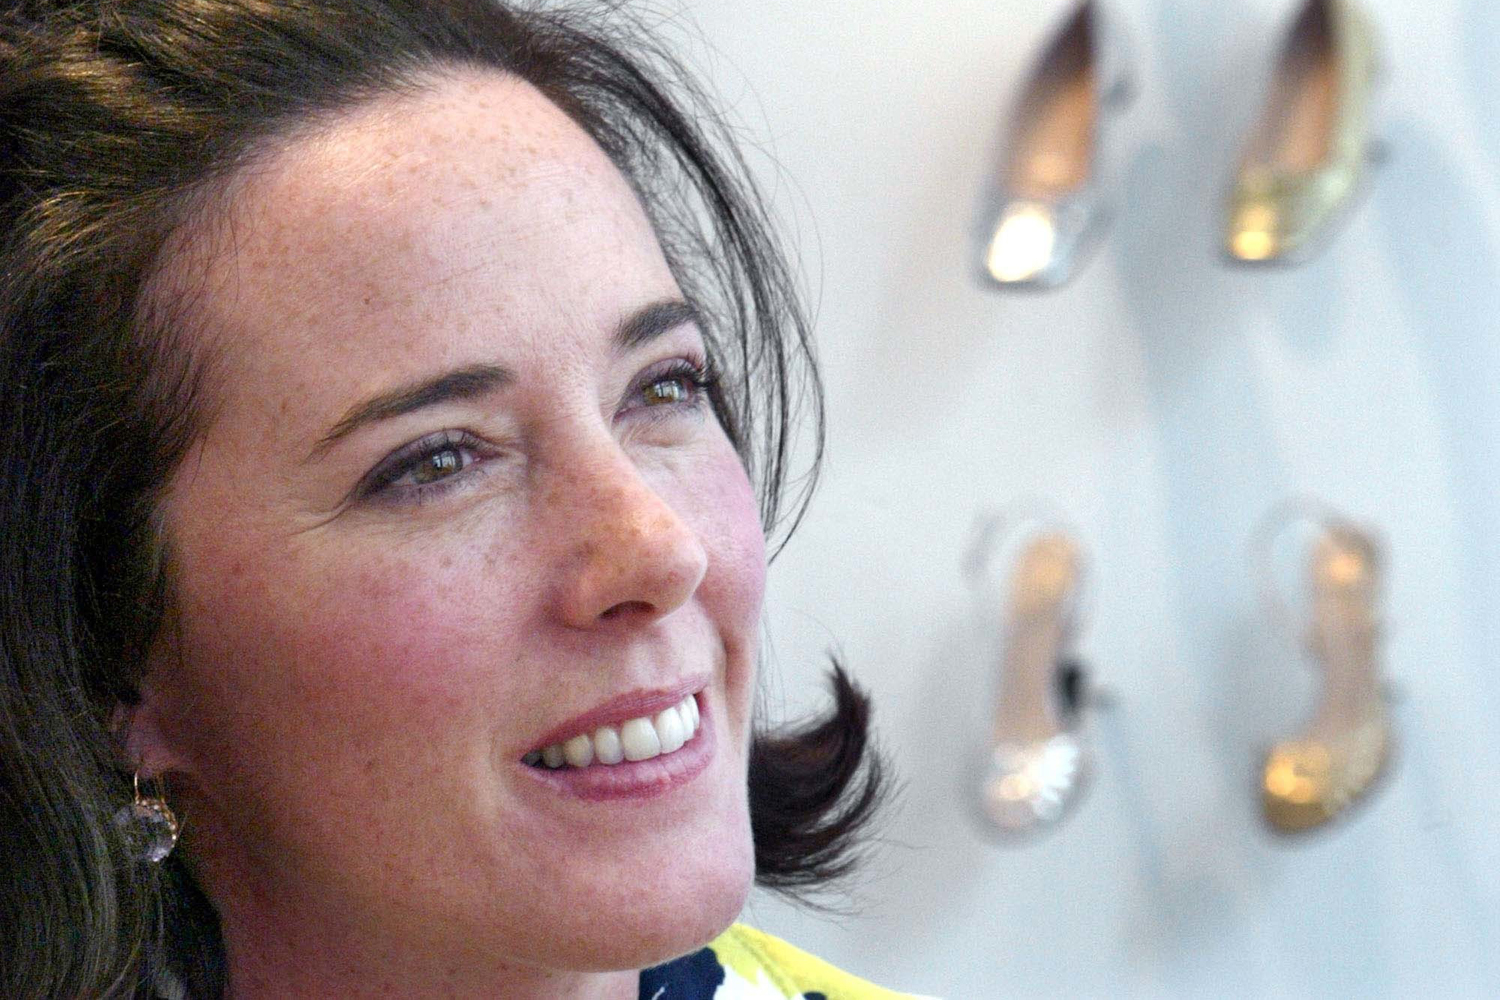 After Kate Spade's Death, Widening The Conversation About Women's Mental Health